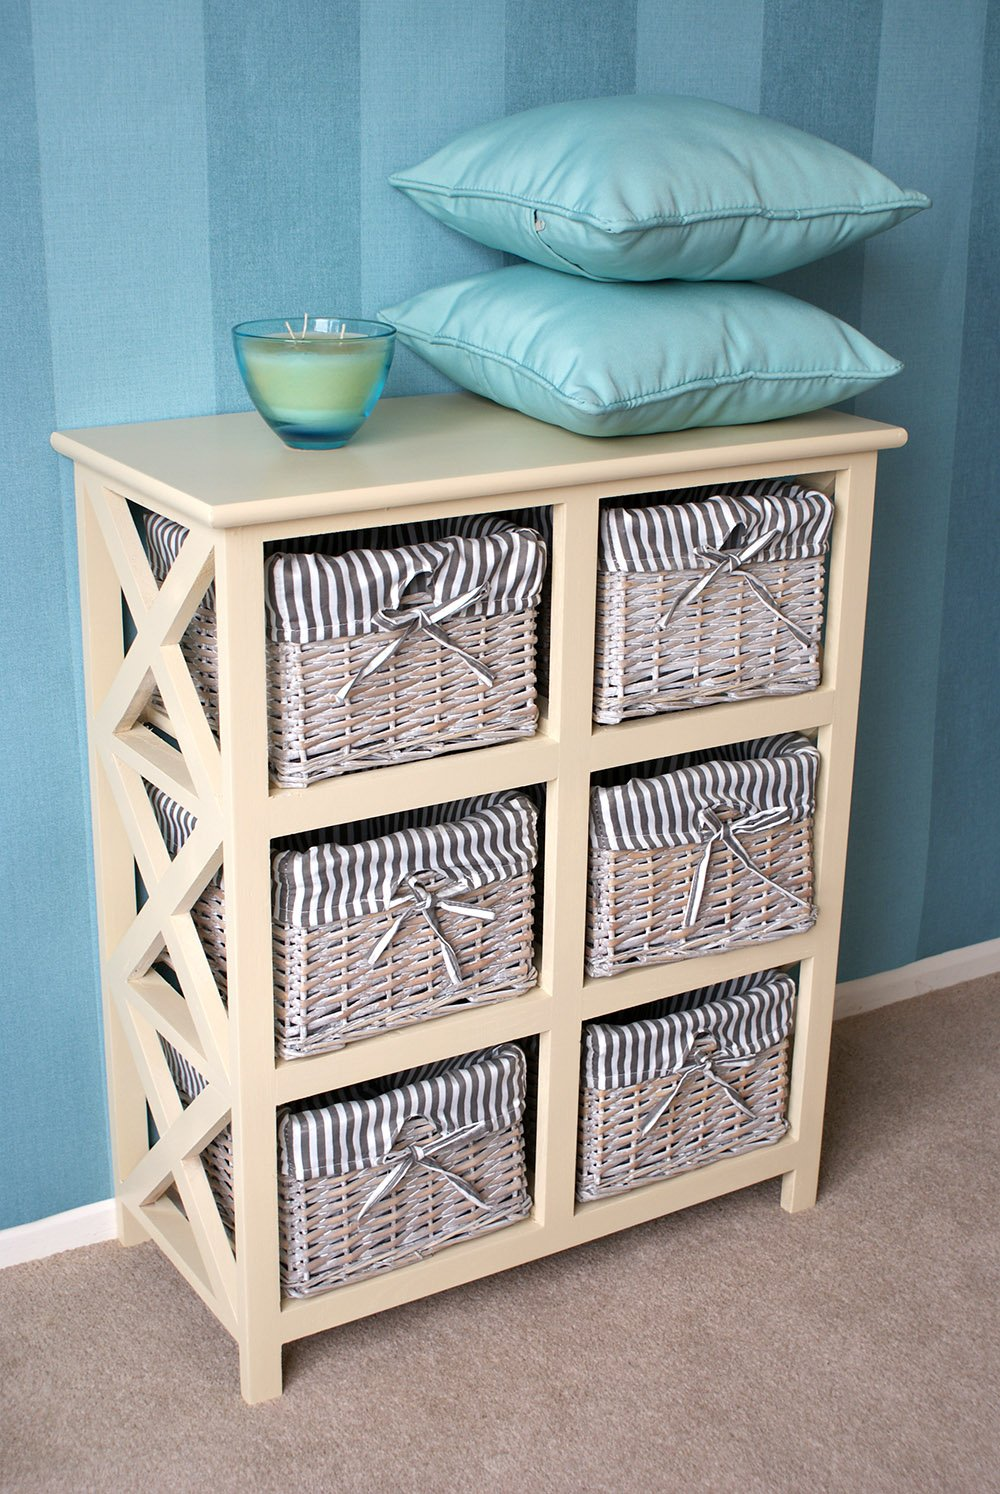 Exceptionnel Casamoré Selsey 6 Drawer Wicker Storage Wooden Unit/Chest Drawers Fabric  Lined Removable Baskets: Amazon.co.uk: Kitchen U0026 Home